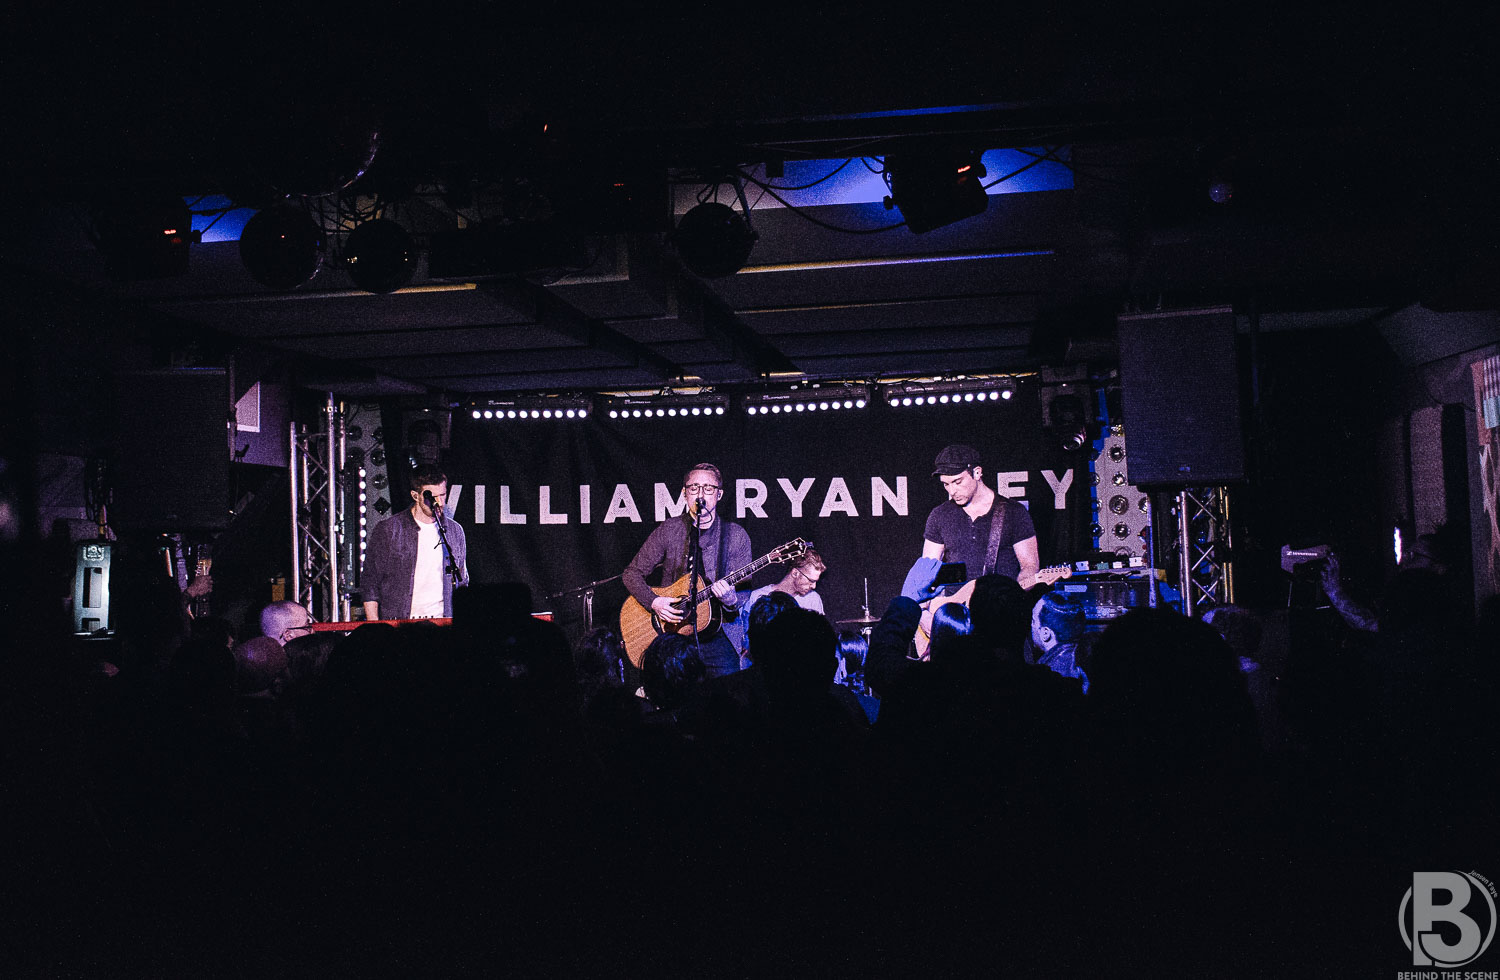 030119 William Ryan Key JF-15.jpg